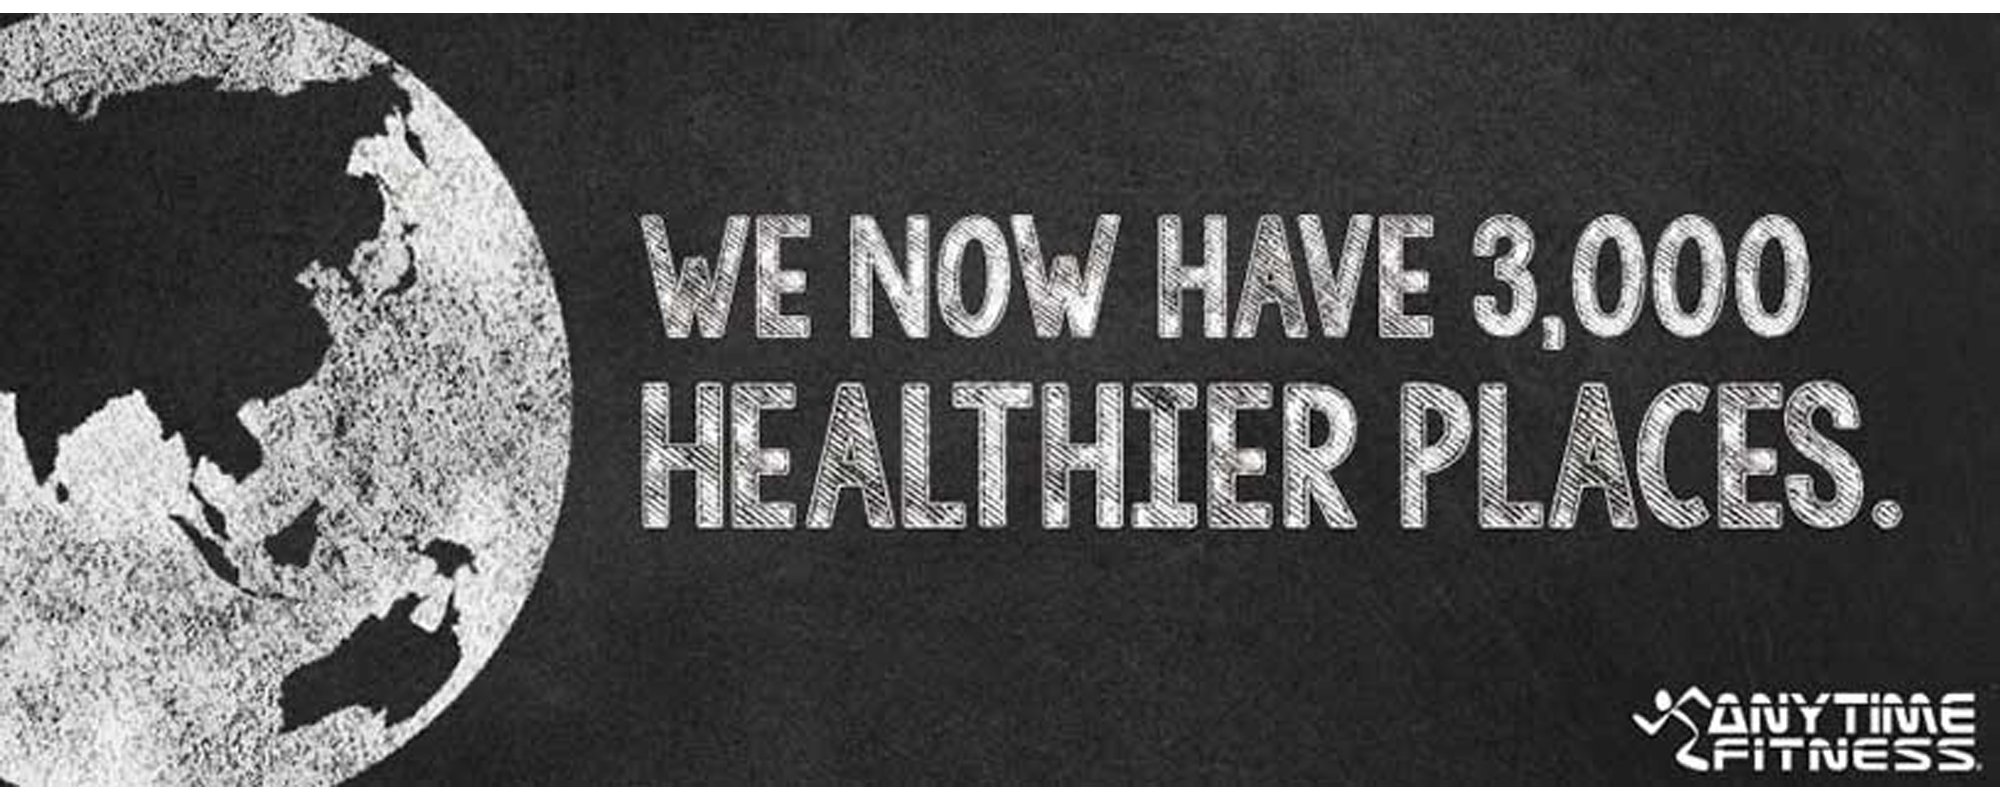 We now have 3000 healthier places